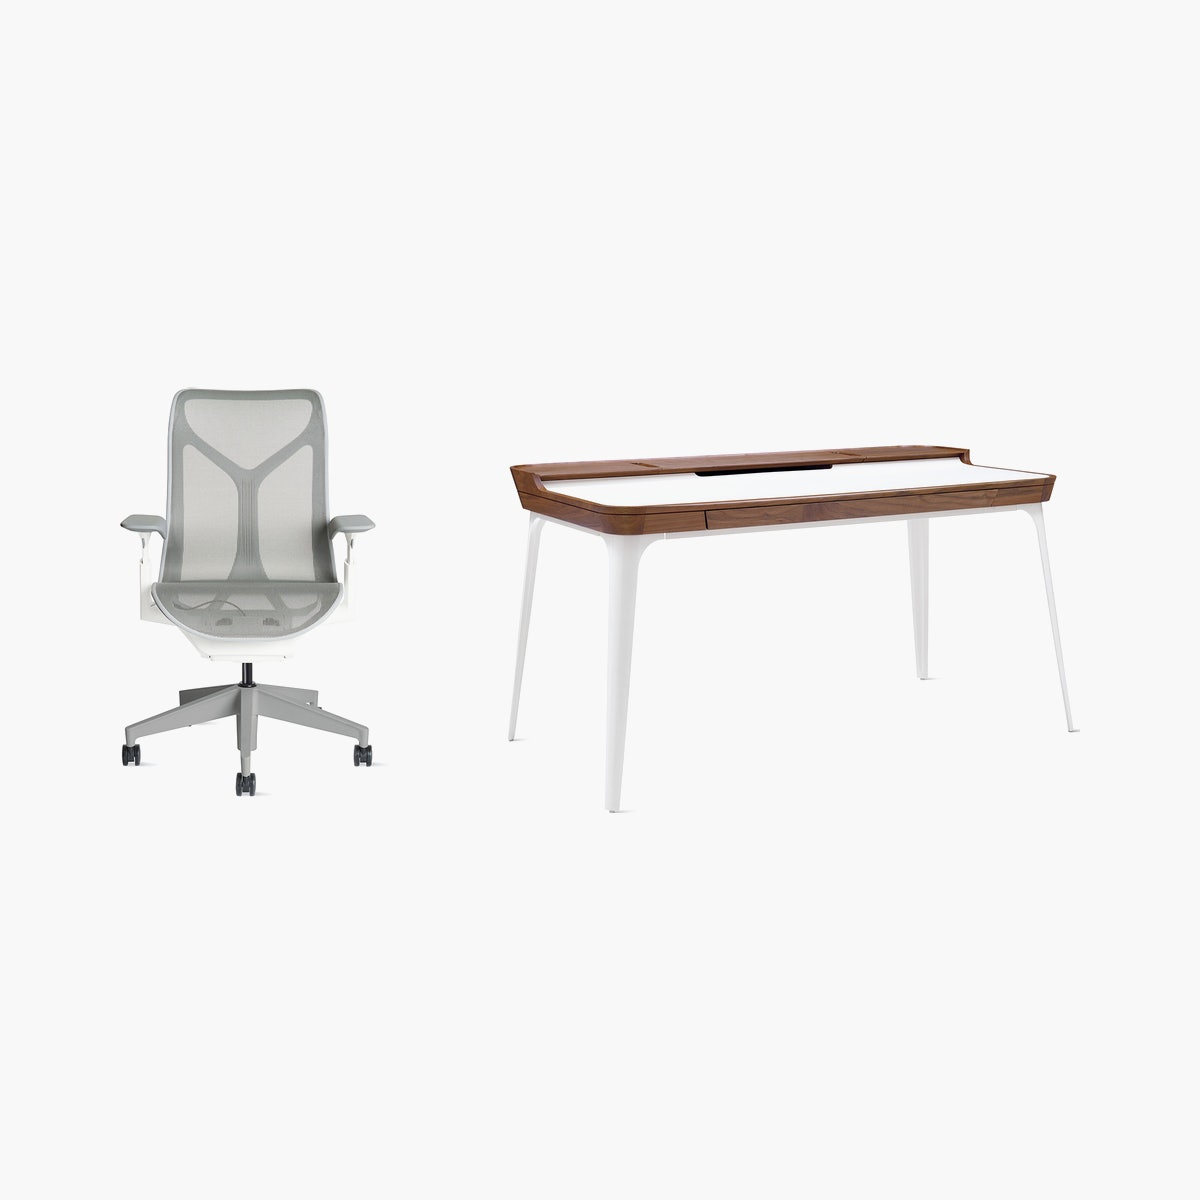 Cosm Chair / Aria Desk Office Bundle